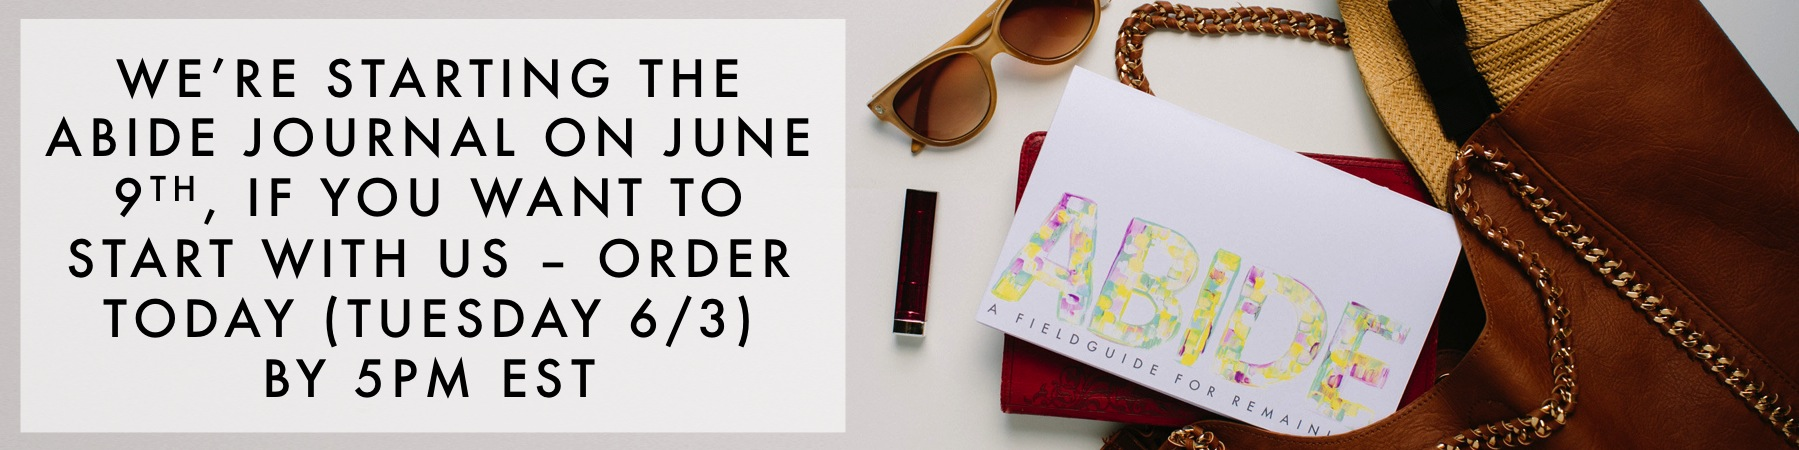 Our  Abide journal  is totally undated and you can do it any time, but if you'd like to start when we start (next Monday - June 9th, make sure you order today by 5pm EST)